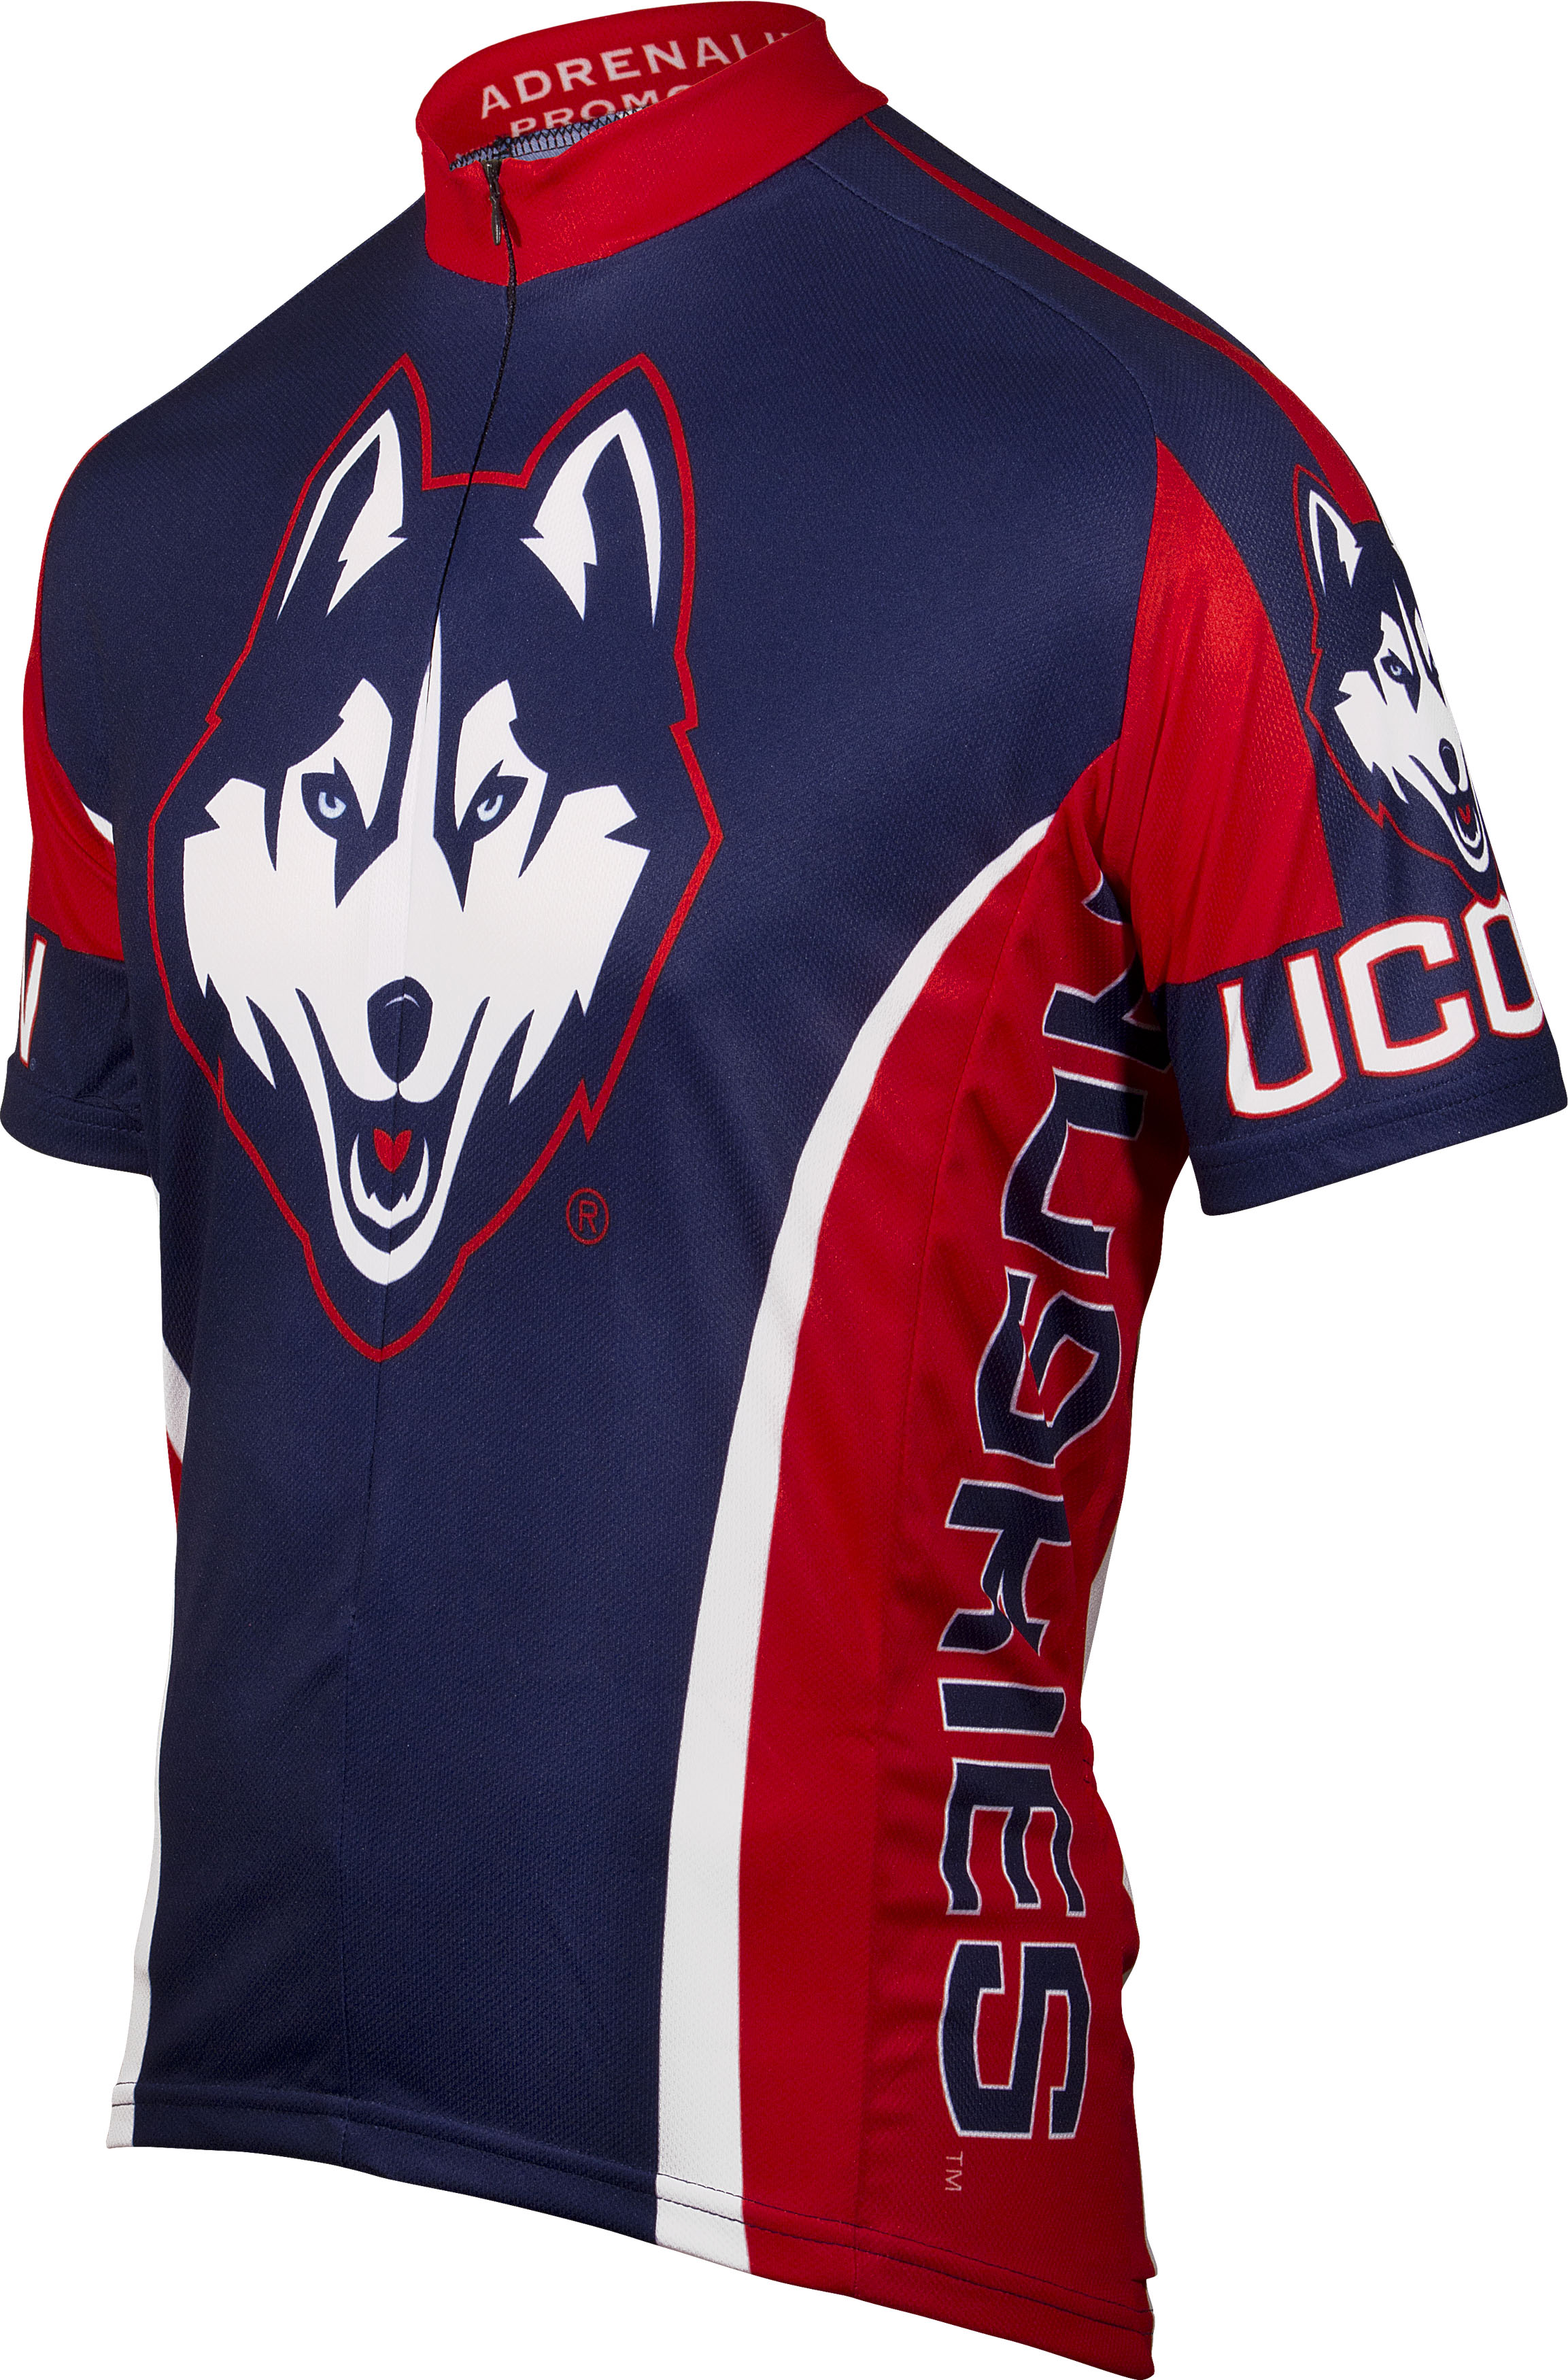 University of Connecticut UCONN Cycling Jersey Small